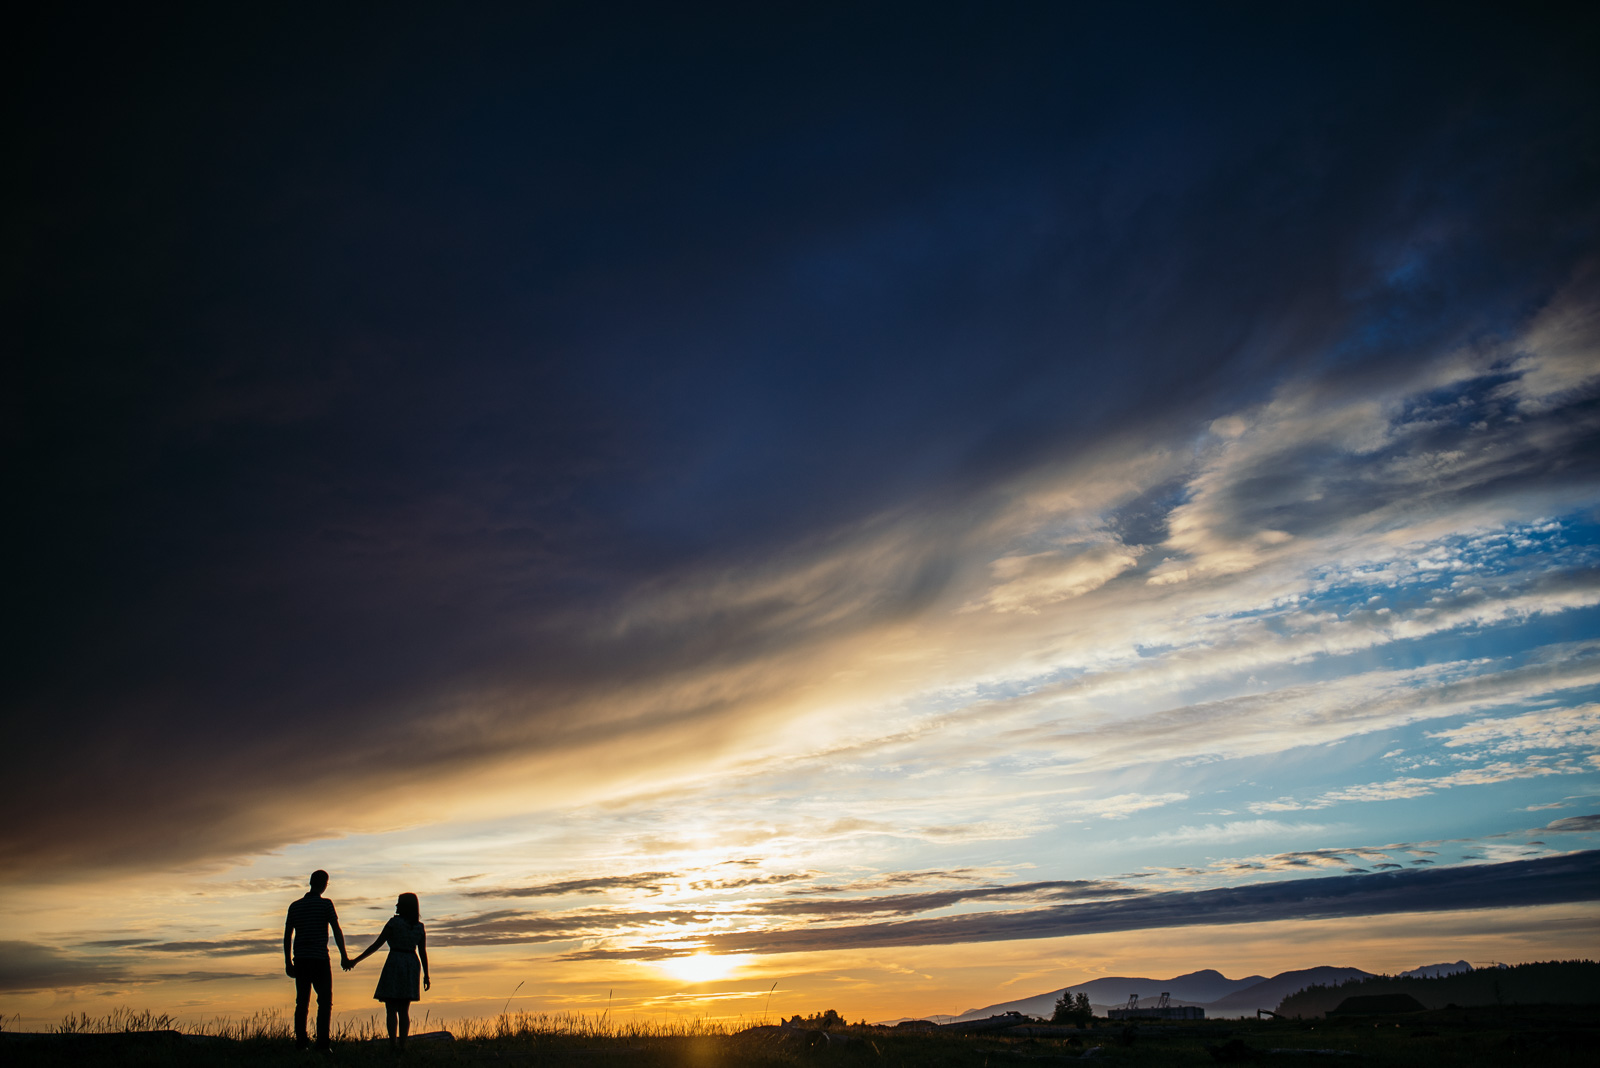 ^I mentioned it above, but I'll say it again…I'm a sucker for silhouettes! During Aaron and Ramiza's engagement shoot at Iona Beach, we were gifted with just a ridiculous sunset with awesome dark clouds and bright colours. I asked them to walk up onto the grassy ridge and watch the sunset, and this was the resulting photo.